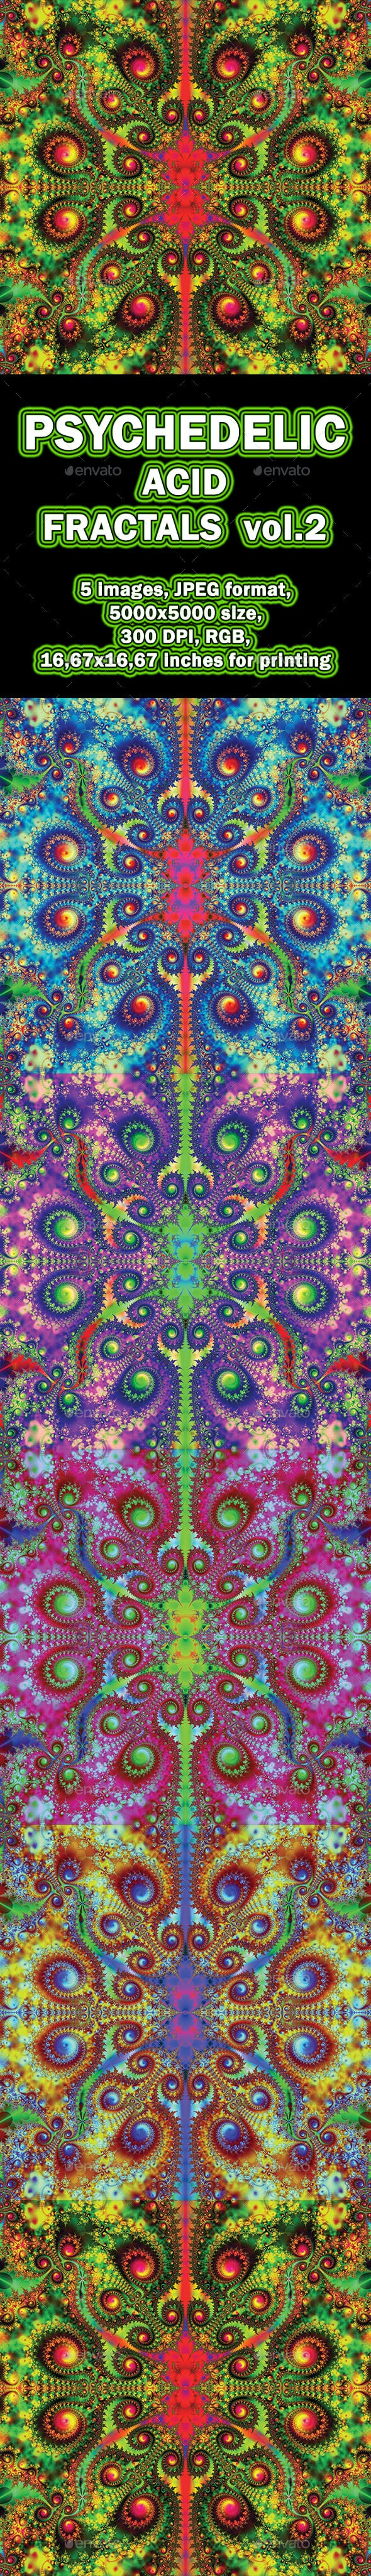 Acid Psychedelic Fractals vol.2 - Abstract Backgrounds